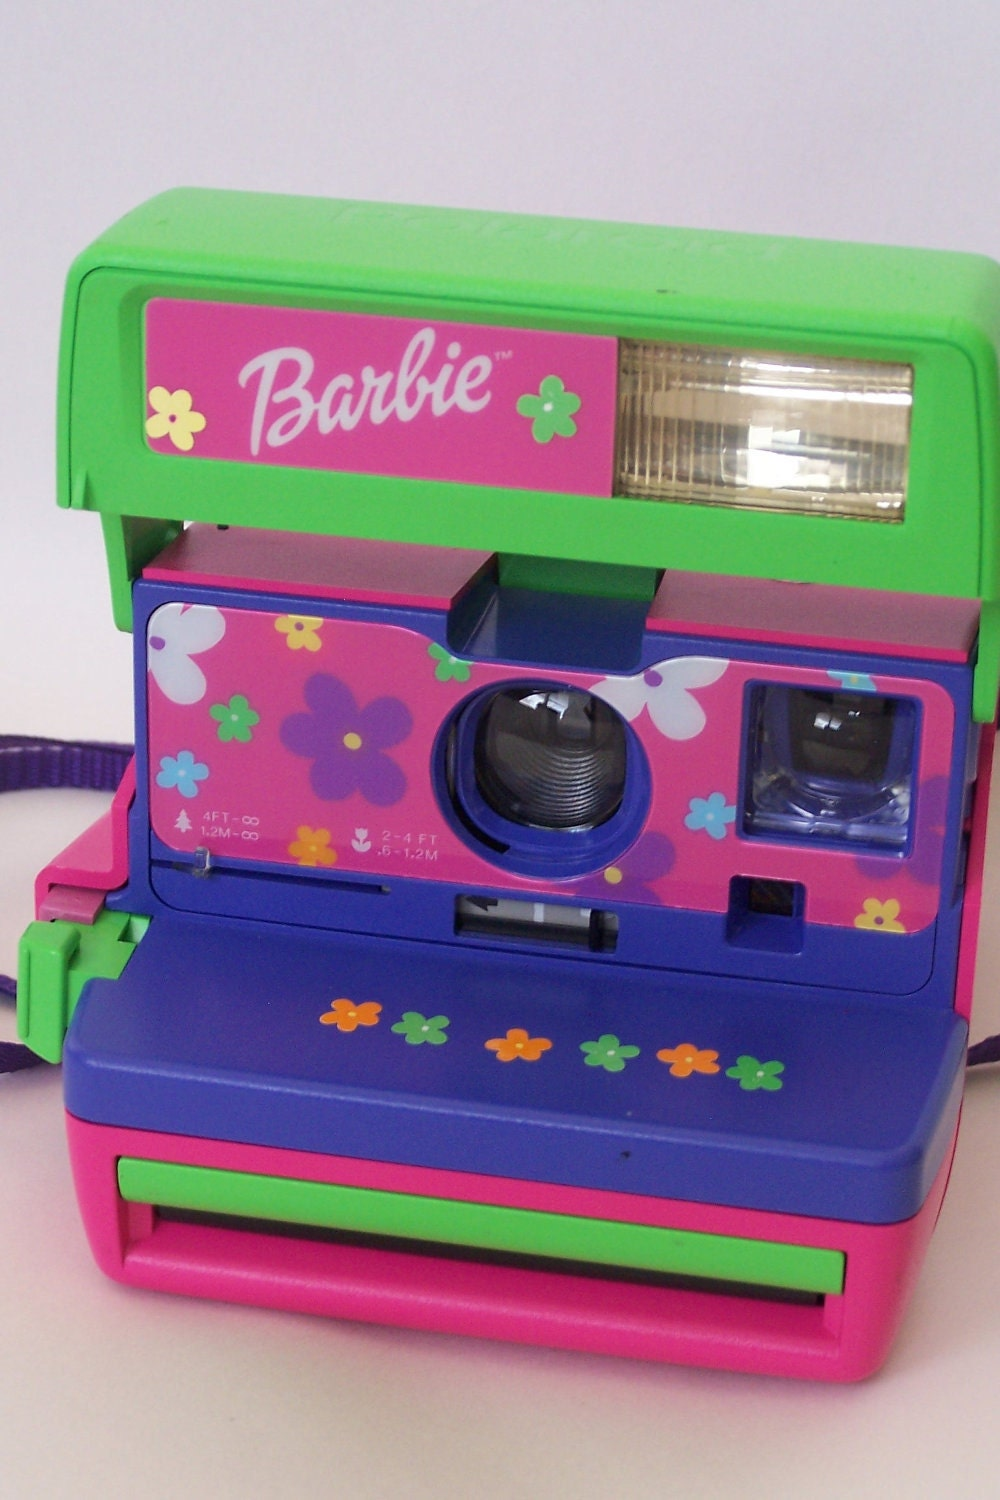 Vintage Barbie Polaroid Camera Pink Polaroid Camera